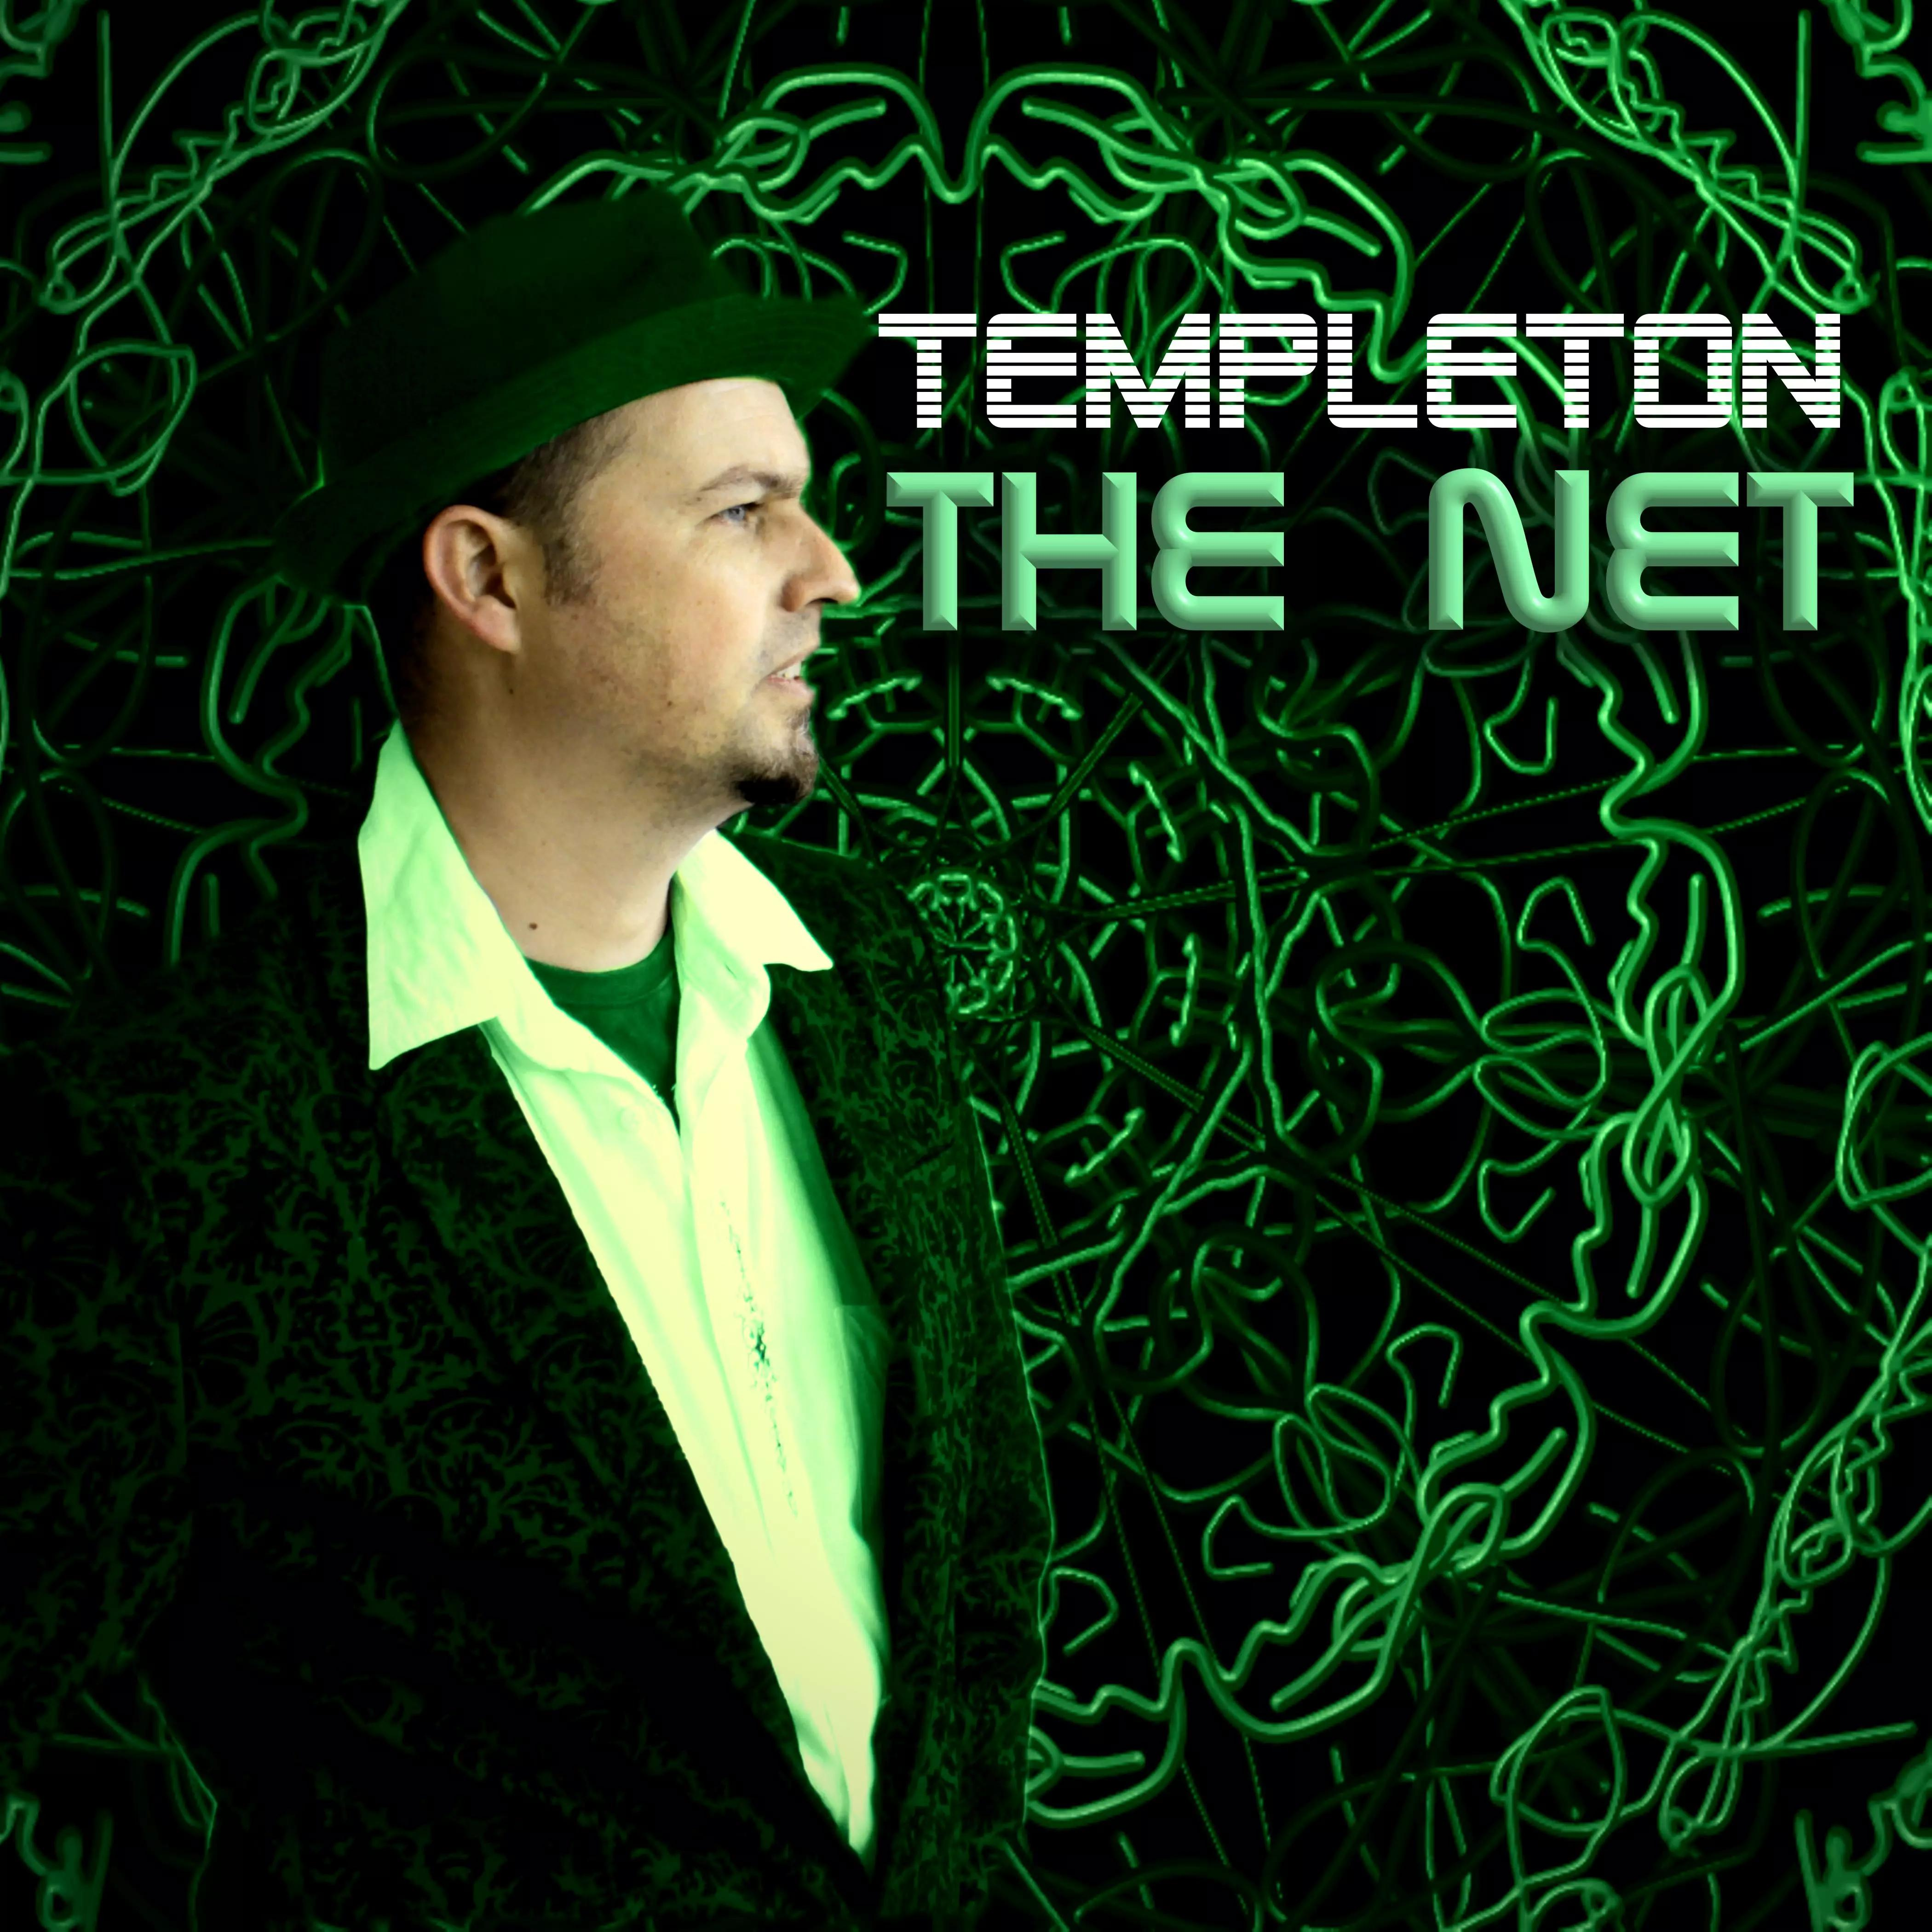 The-Net-CD-Templeton-Cover